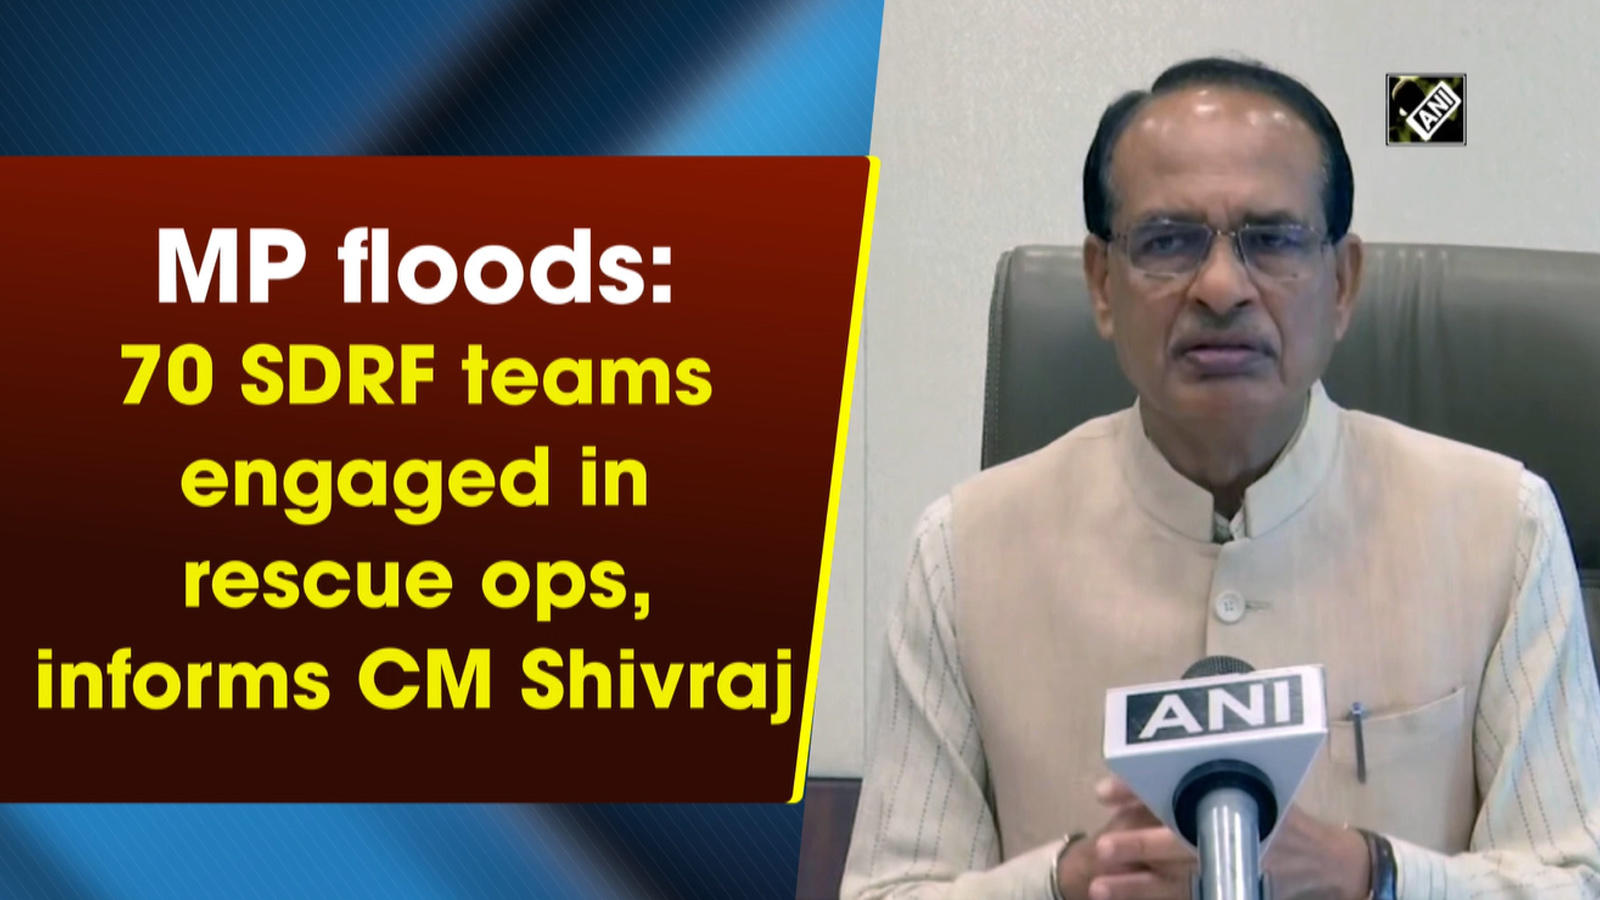 mp-floods-70-sdrf-teams-engaged-in-rescue-ops-informs-cm-shivraj